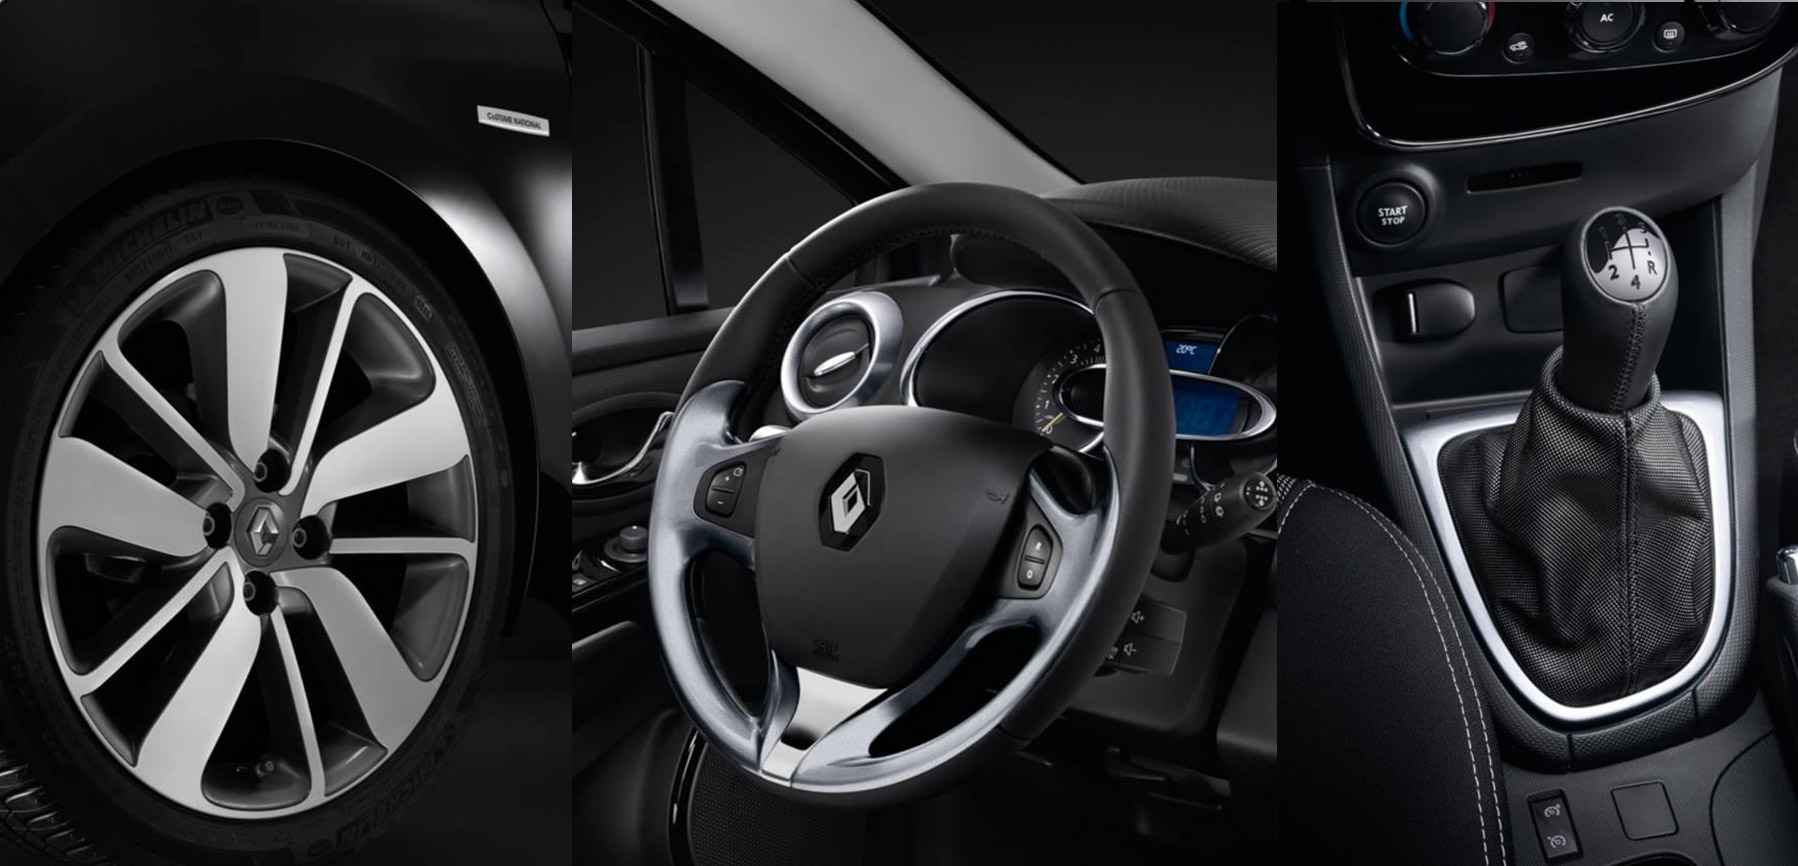 2014 Renault Clio Costume National Limited Edition - Price